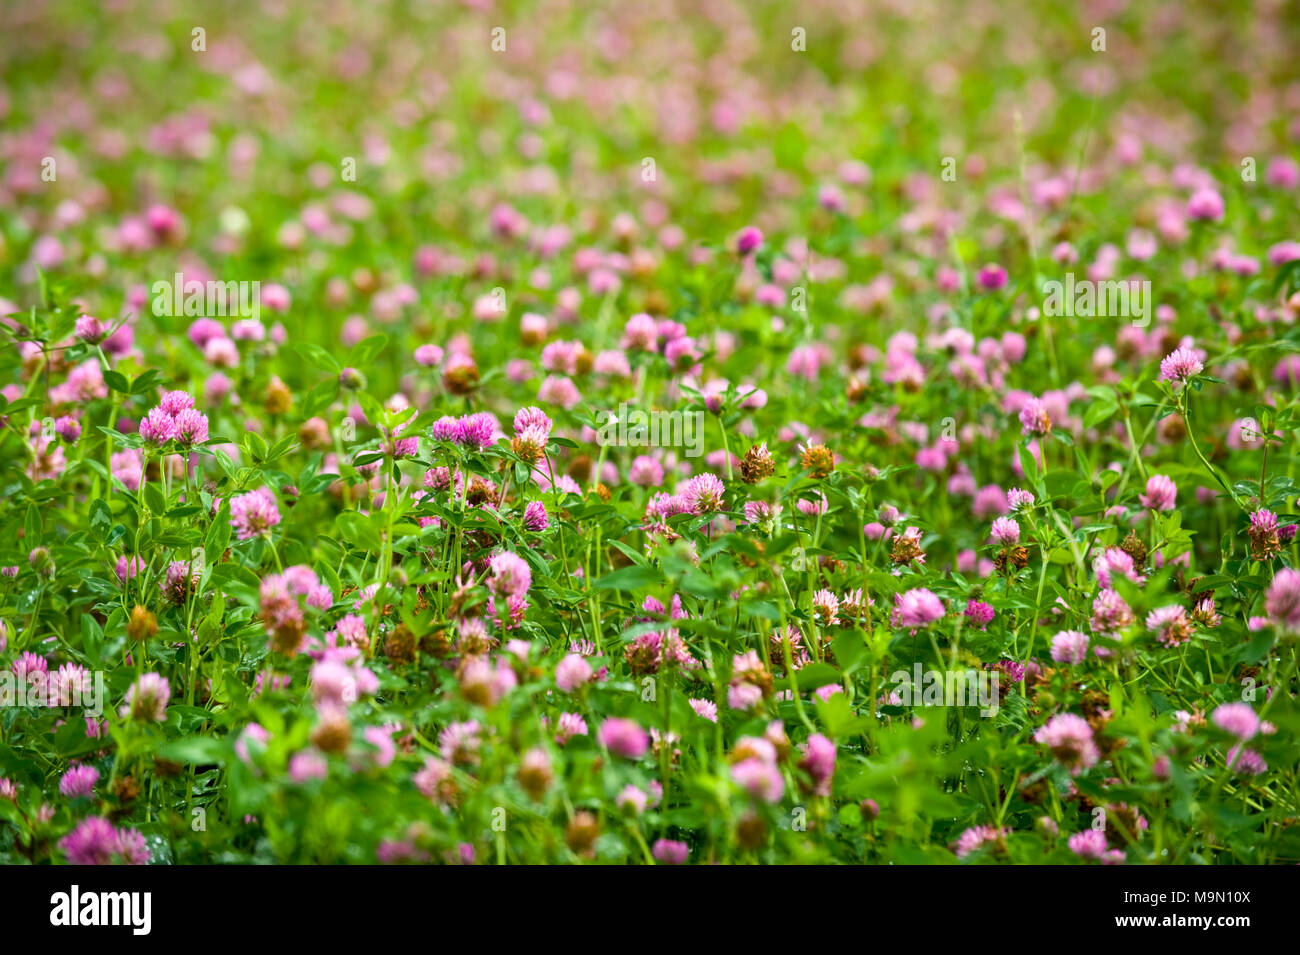 Clover growing in field at Glasbury Powys UK Stock Photo